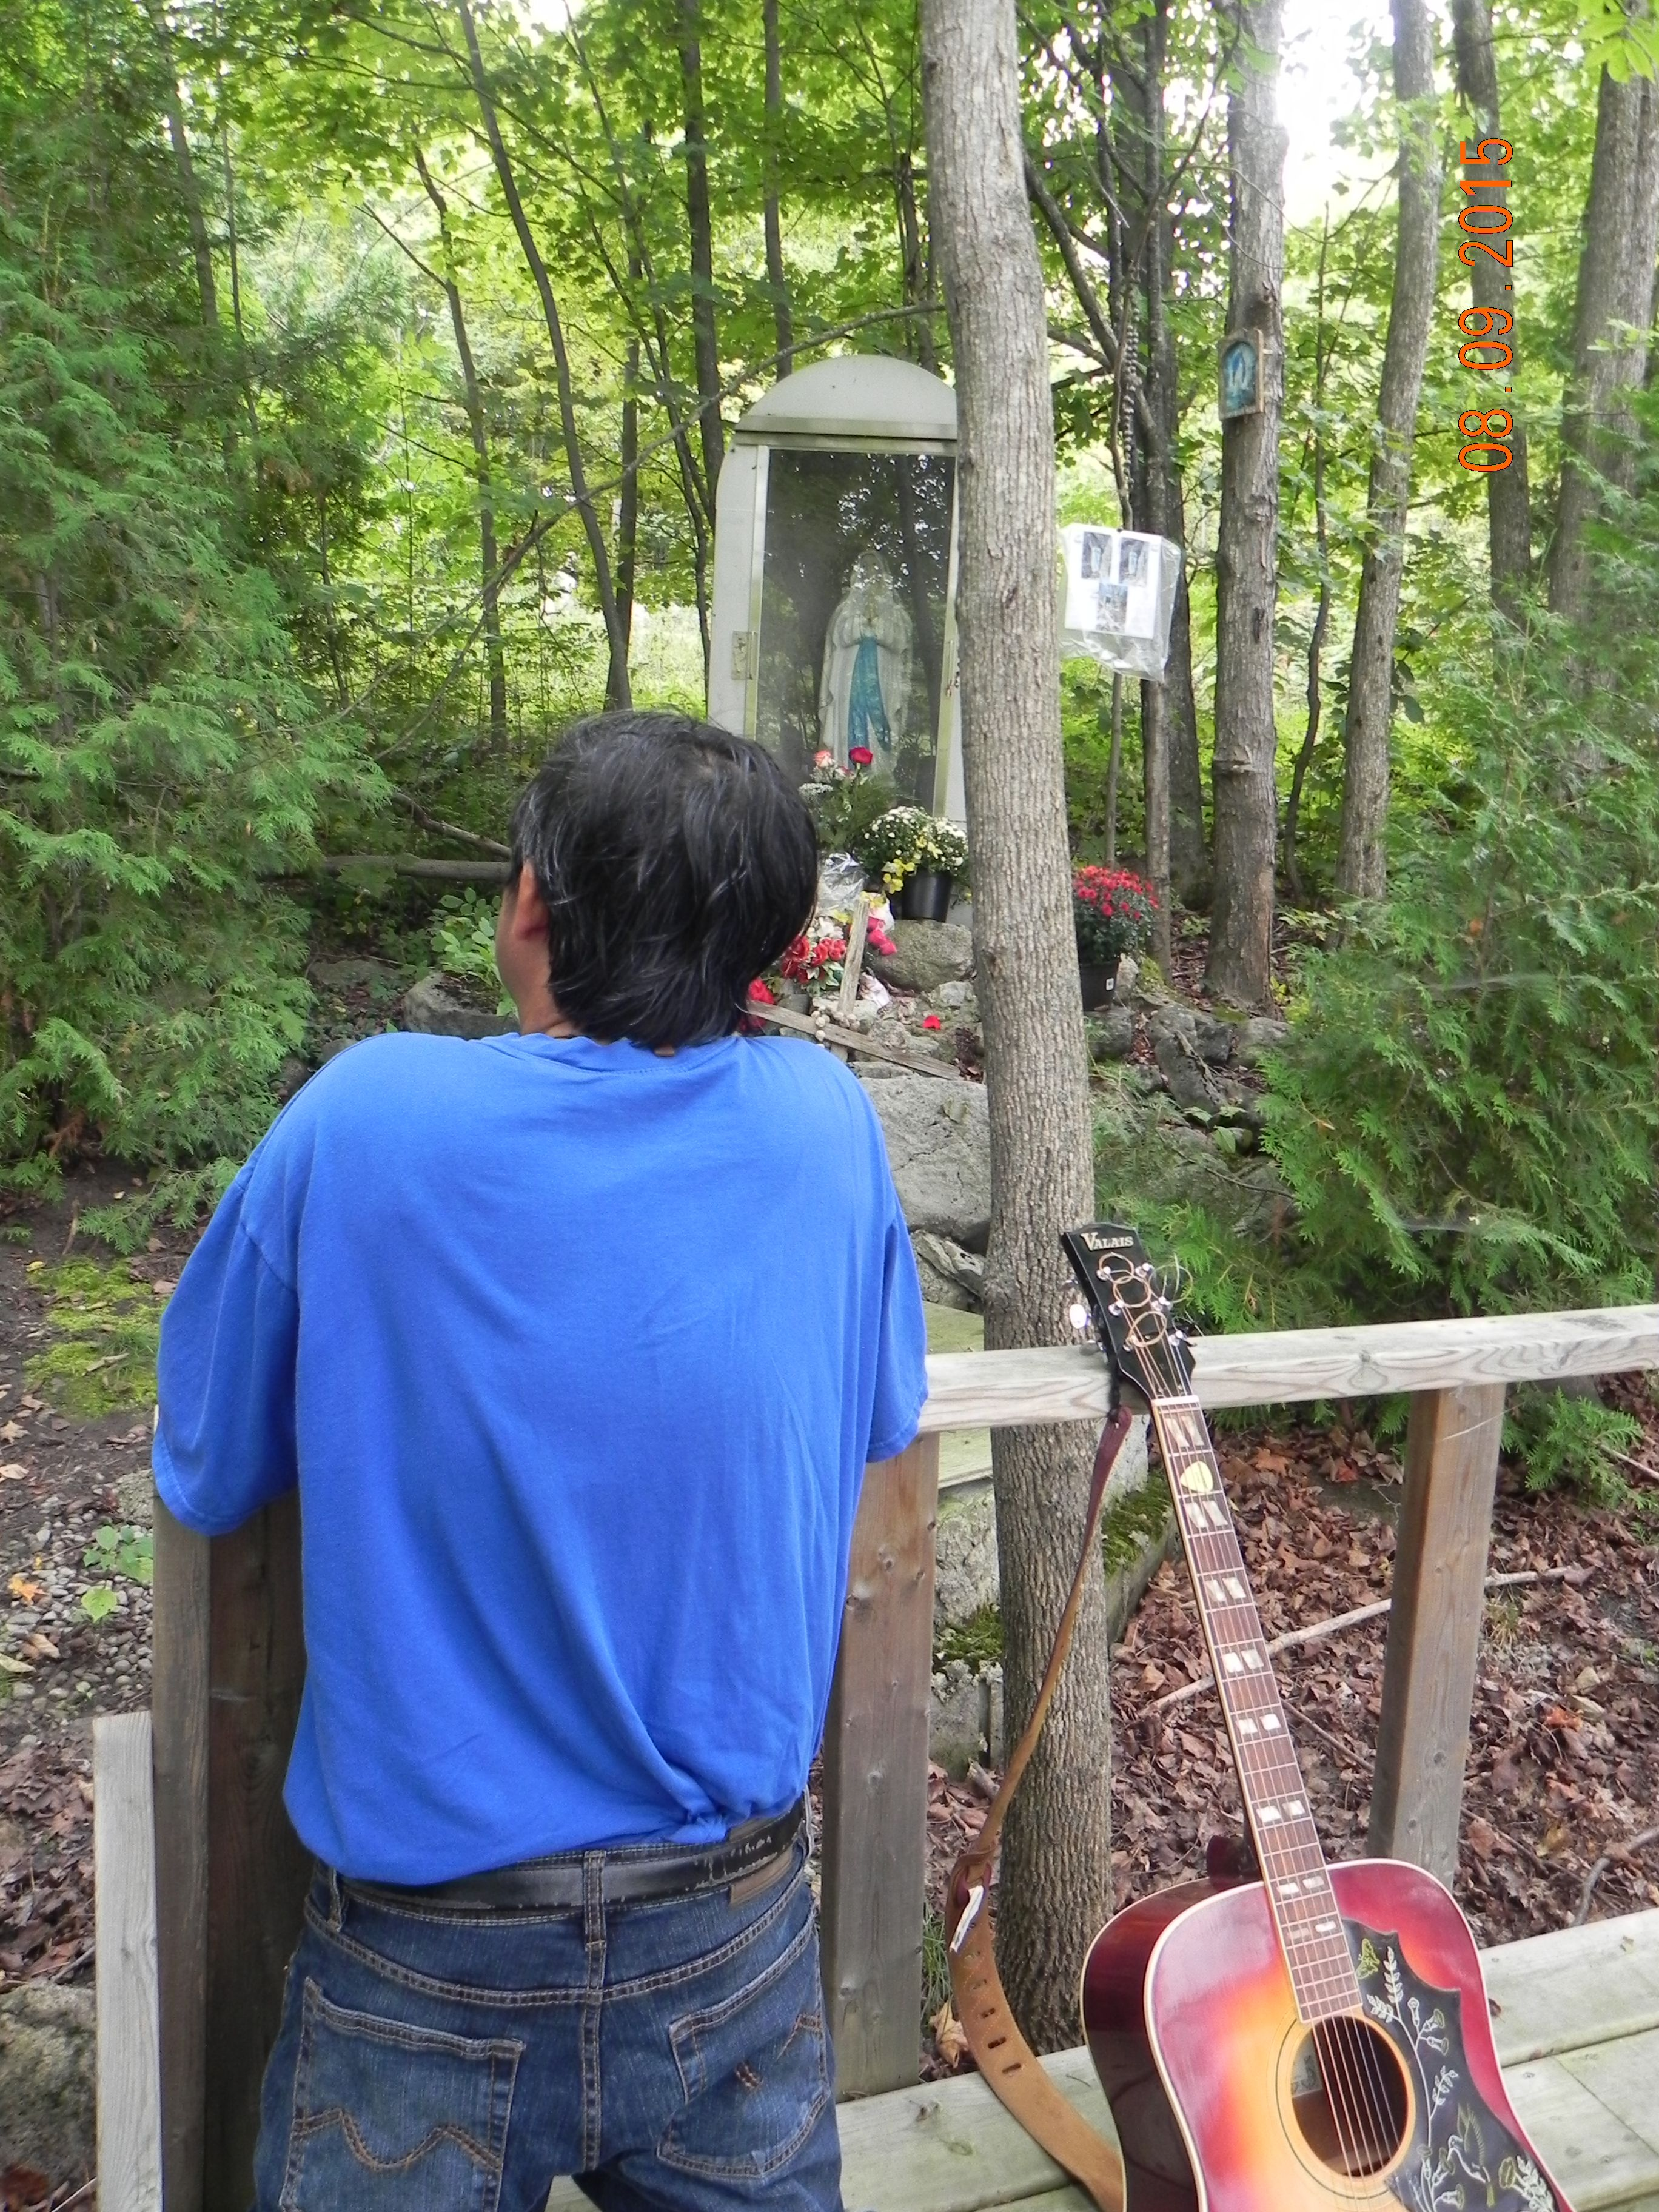 Praying at the Grotto